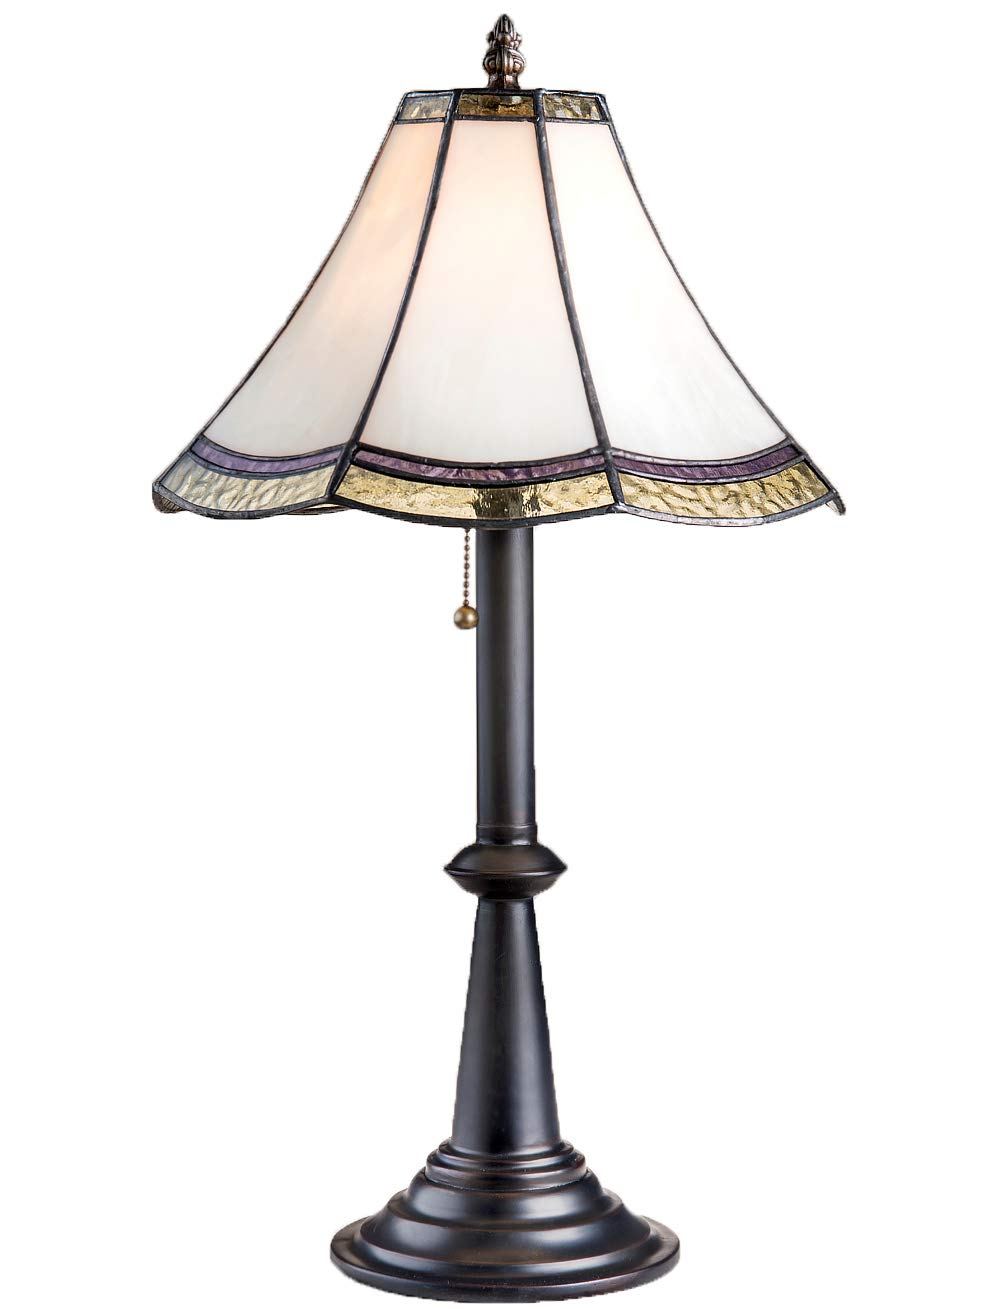 J Devlin Glass Art Lam 597-4 TB Tiffany Stained Glass Table Lamp Curved Ivory Opal with Purple and Green Dresser Bedside Accent Lighting